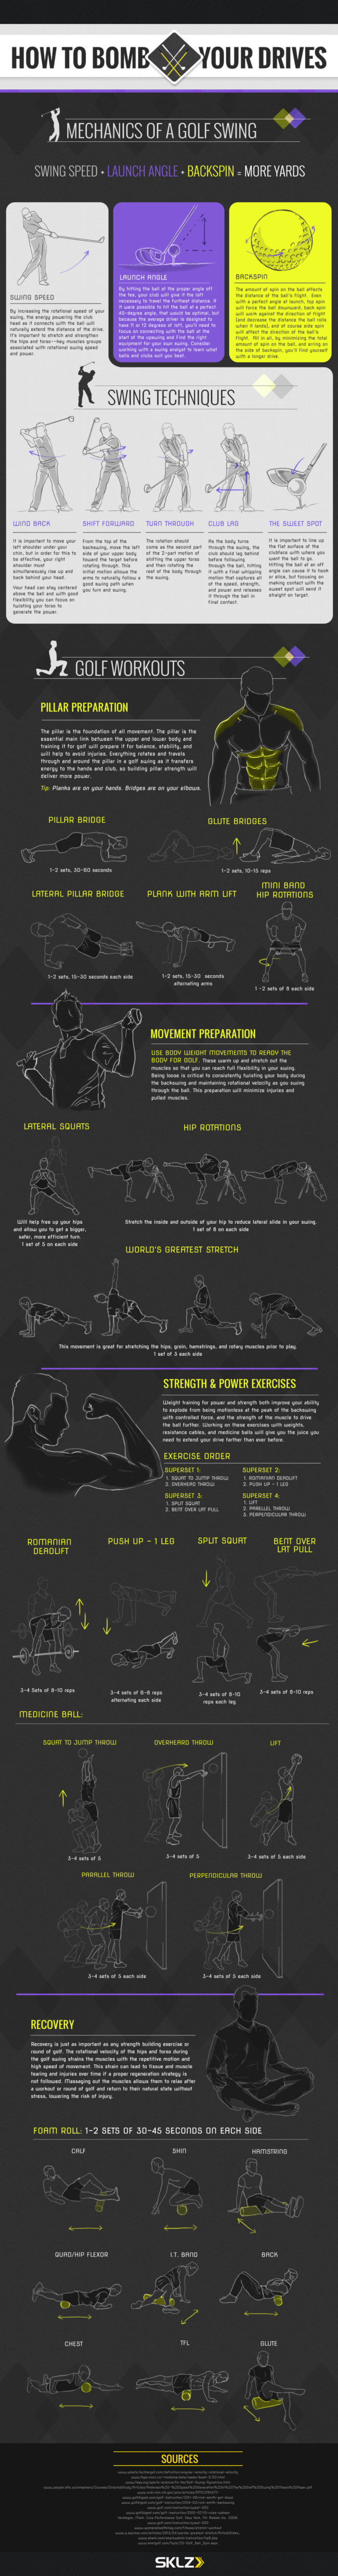 Image titled Tips to Train with Full-body Muscle Workout for Golfers